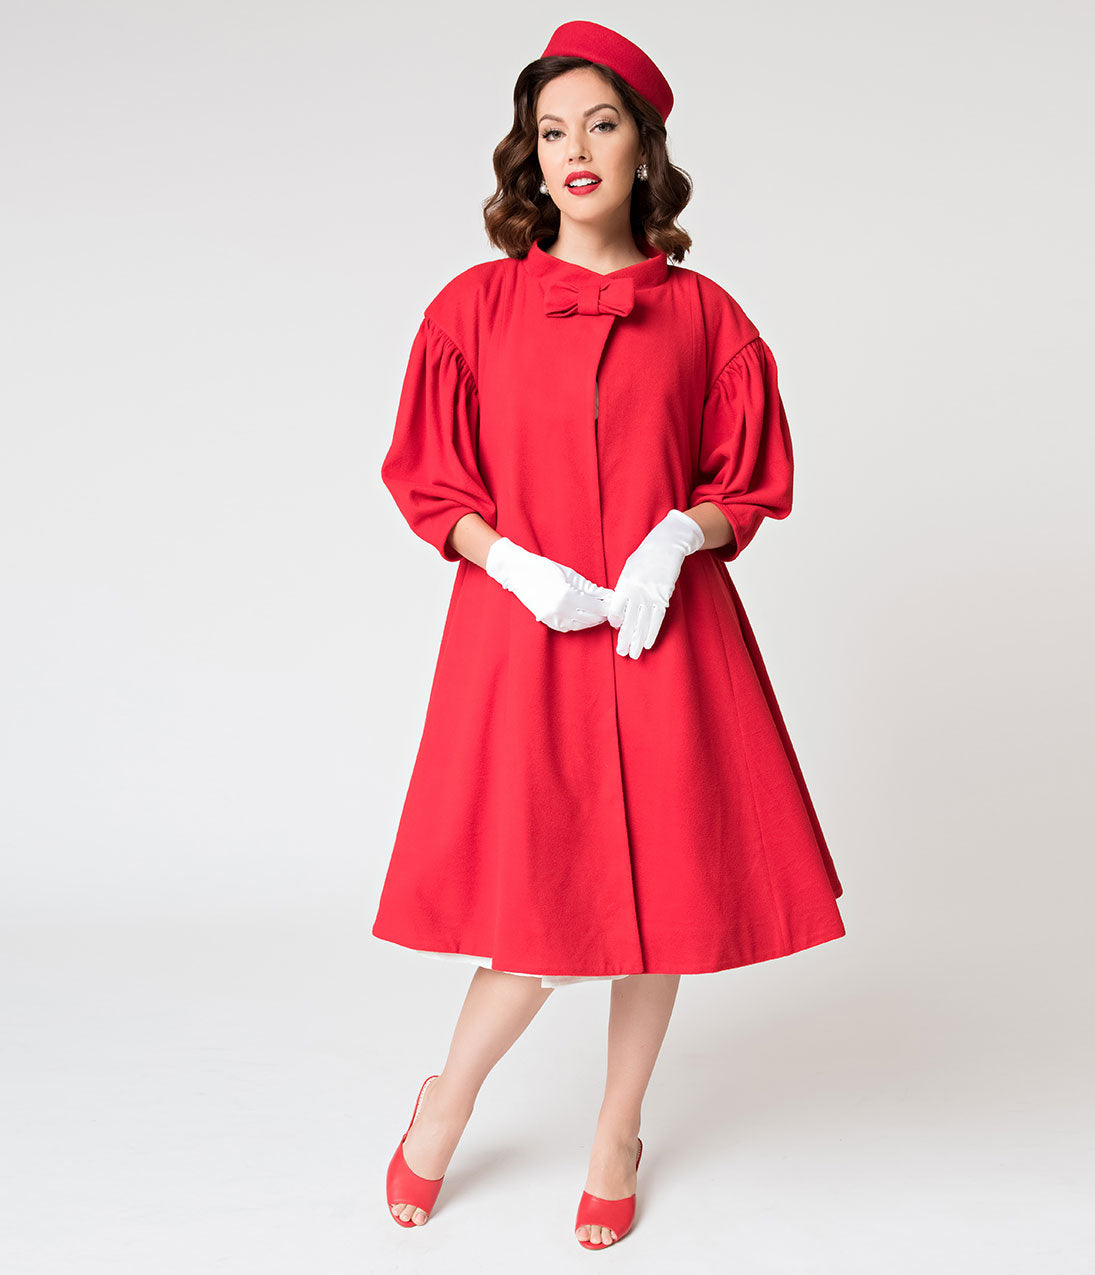 Vintage Coats & Jackets | Retro Coats and Jackets 1960S Style Red Flare Swing Coat $158.00 AT vintagedancer.com